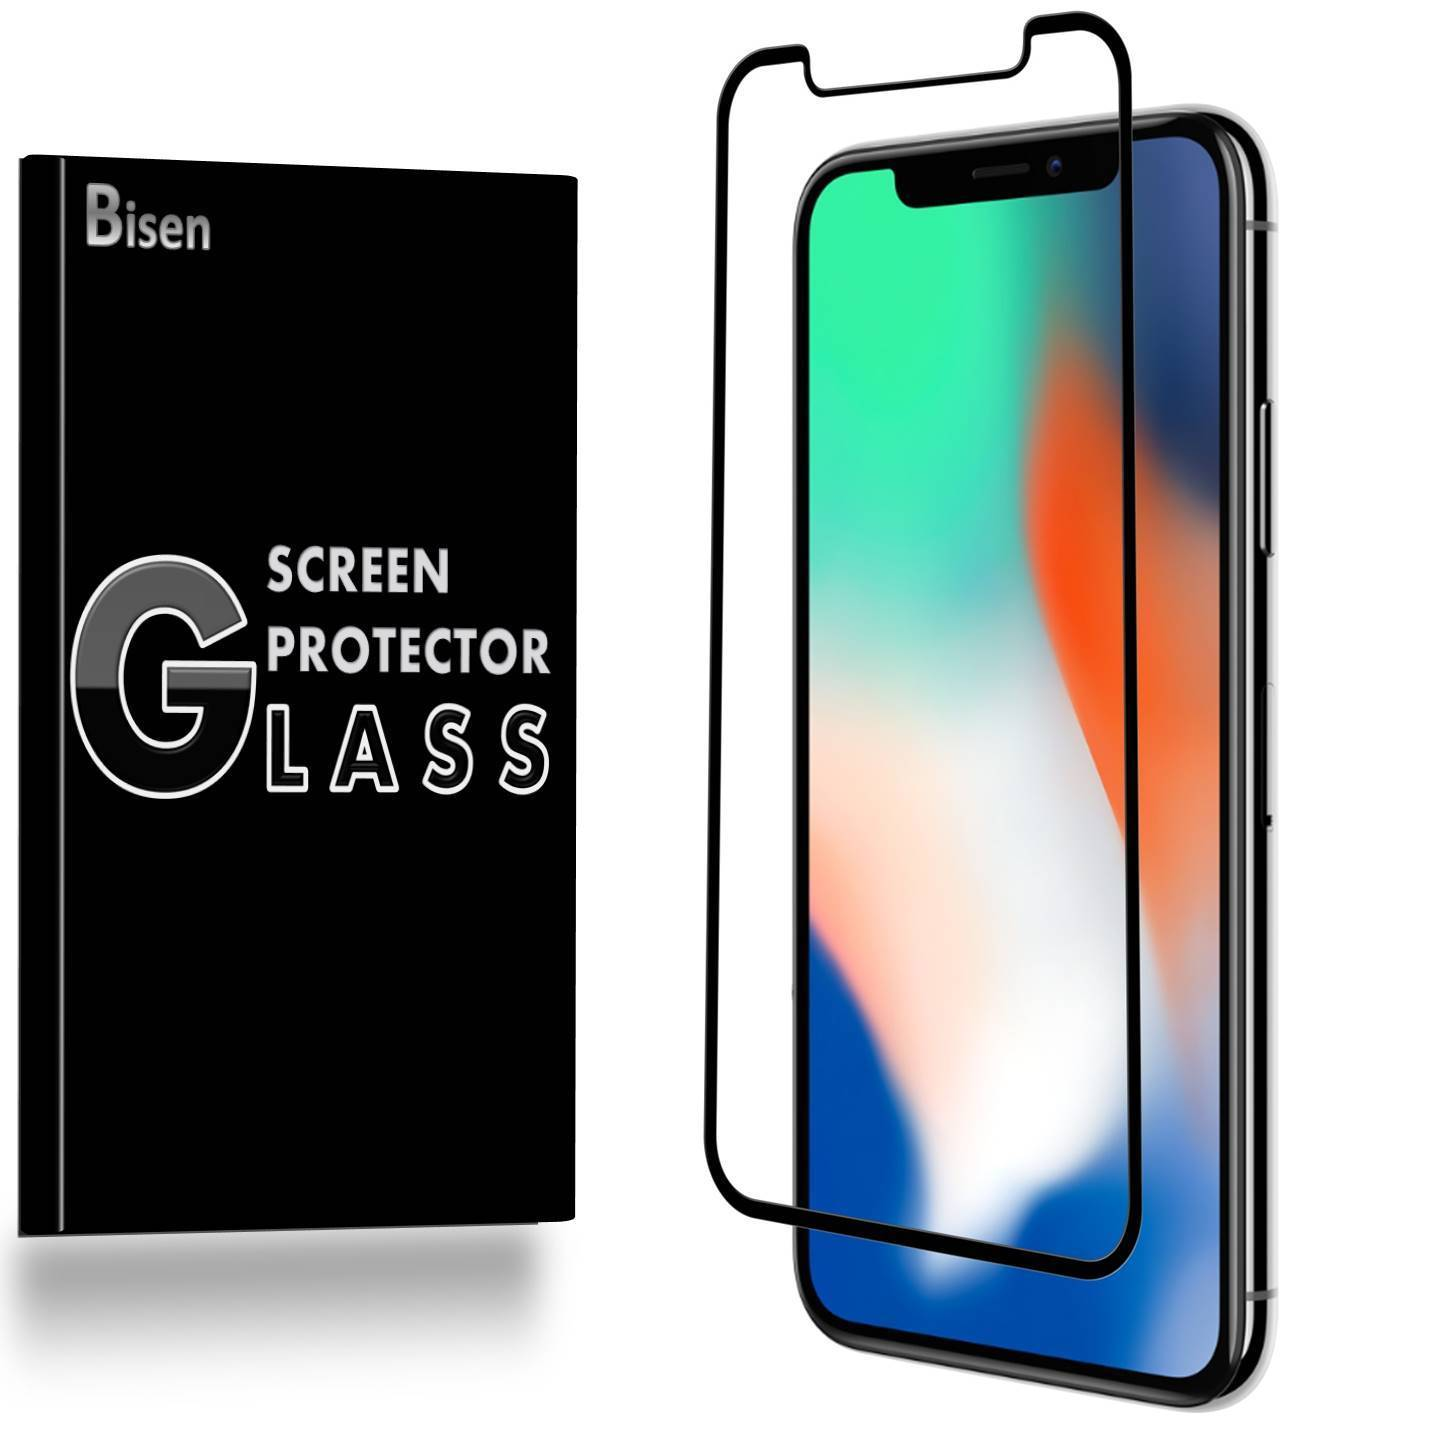 iPhone X (2017 Release) [BISEN] 3D Curved Full Cover Tempered Glass Screen Protector [Case Friendly], Edge-To-Edge Protect, Anti-Scratch, Anti-Shock